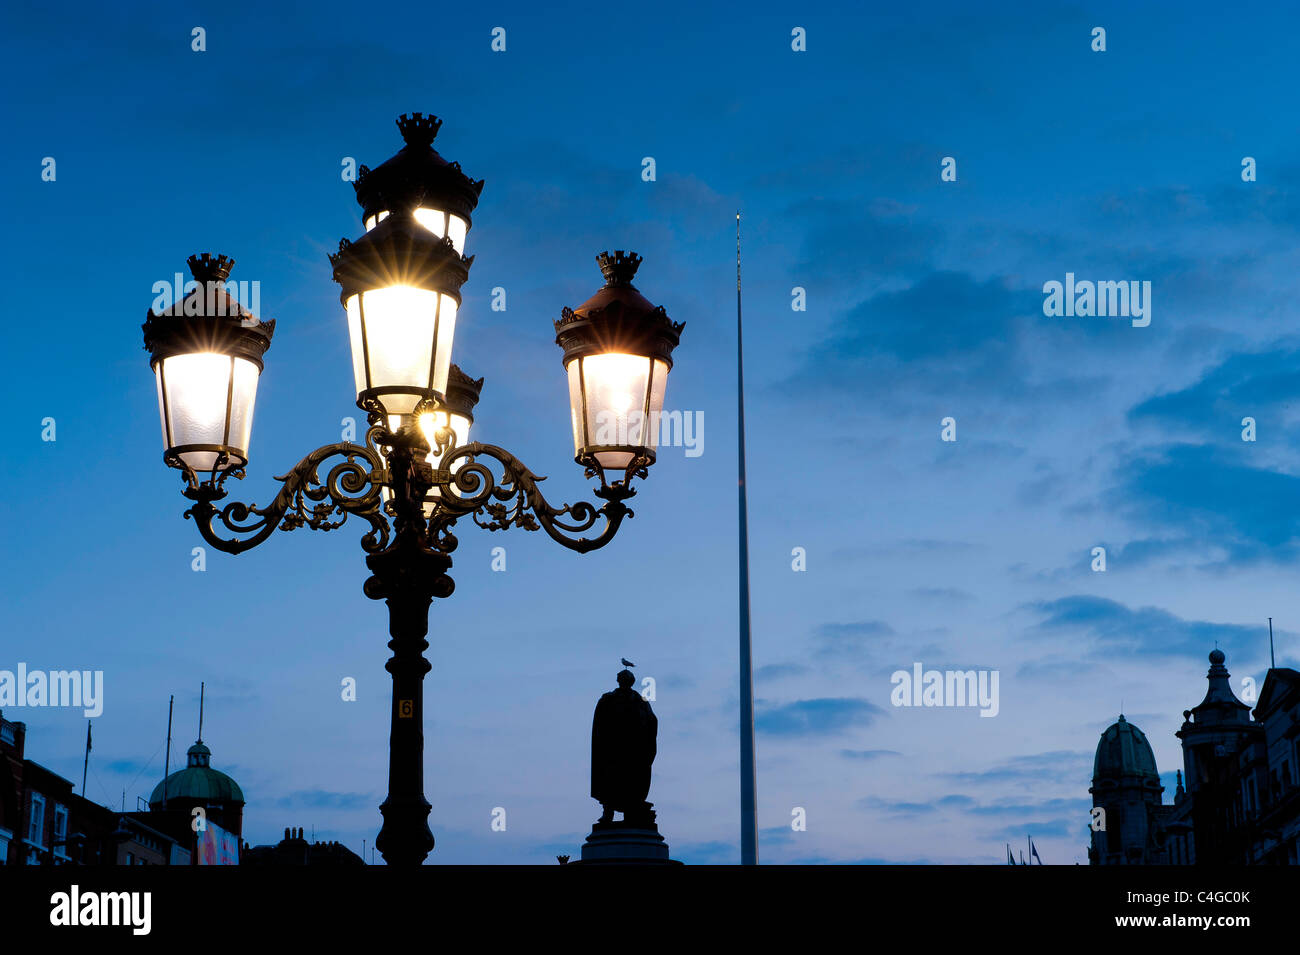 Symbols Of Dublin Five Lamps O Connell Monument And The Spire Of